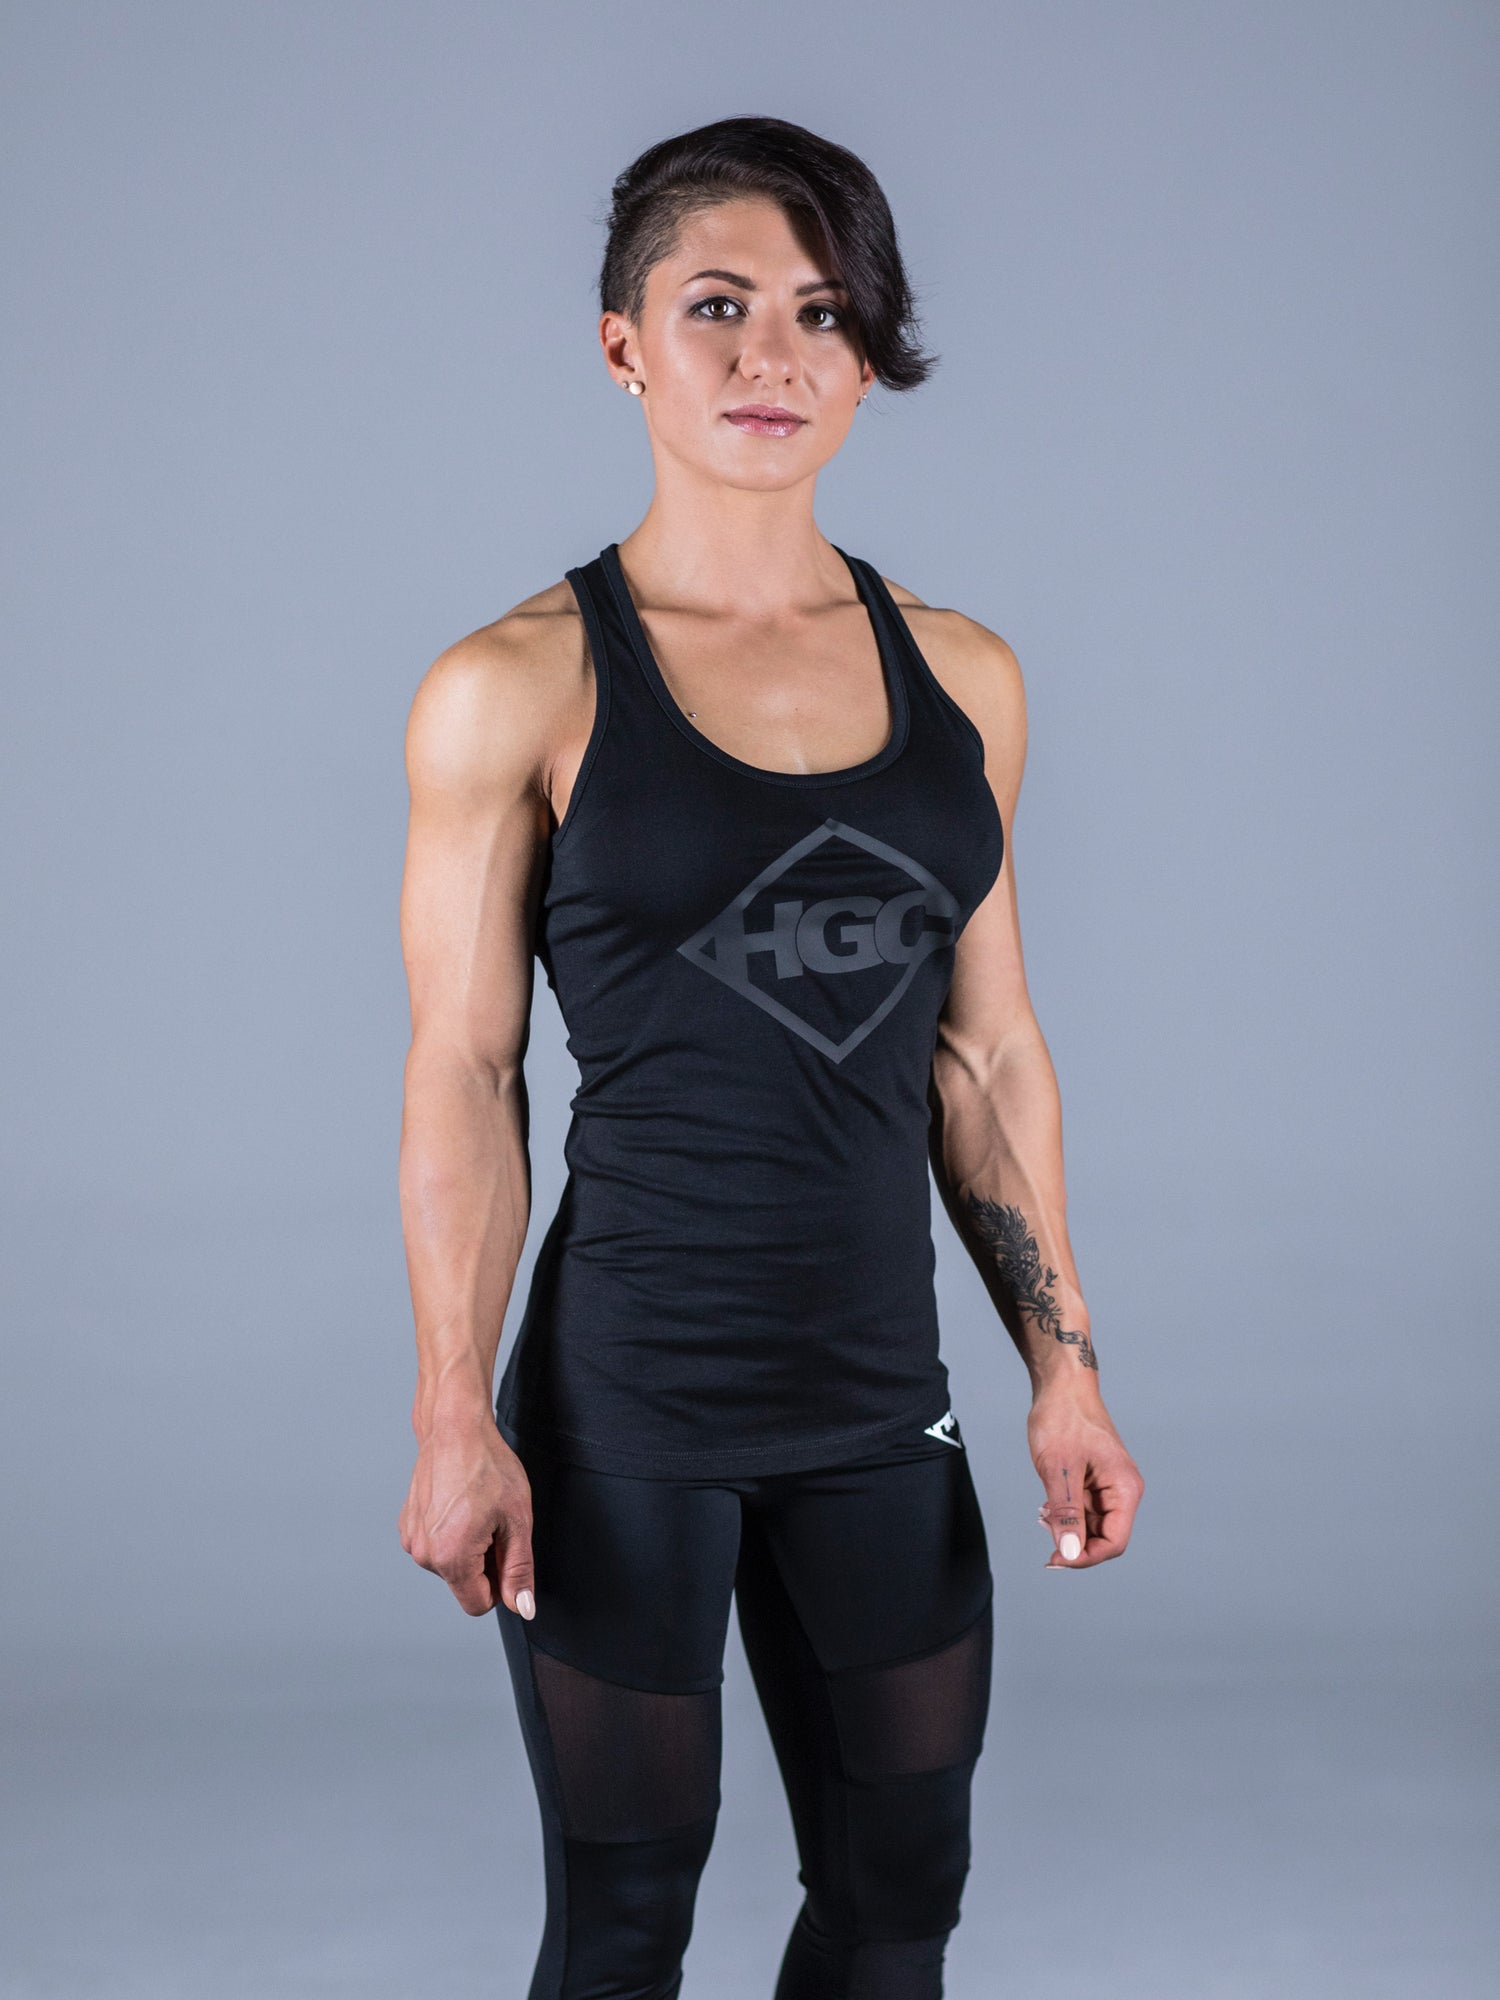 HGC Diamond Tank Top - Black on Black